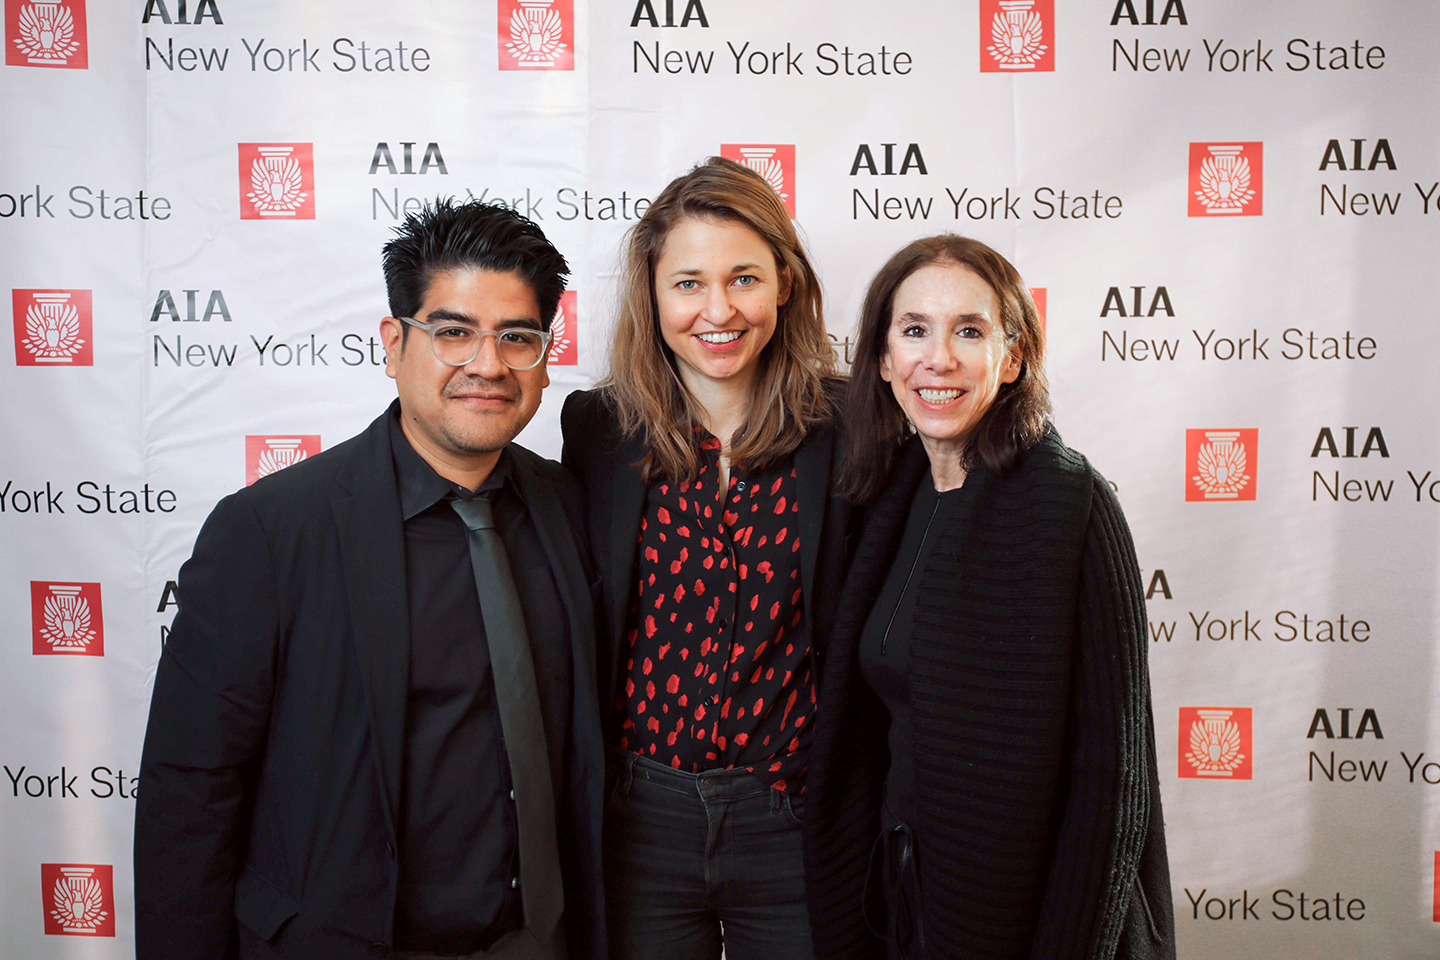 Wendy Evans Joseph with colleagues at the AIA NY State Awards.